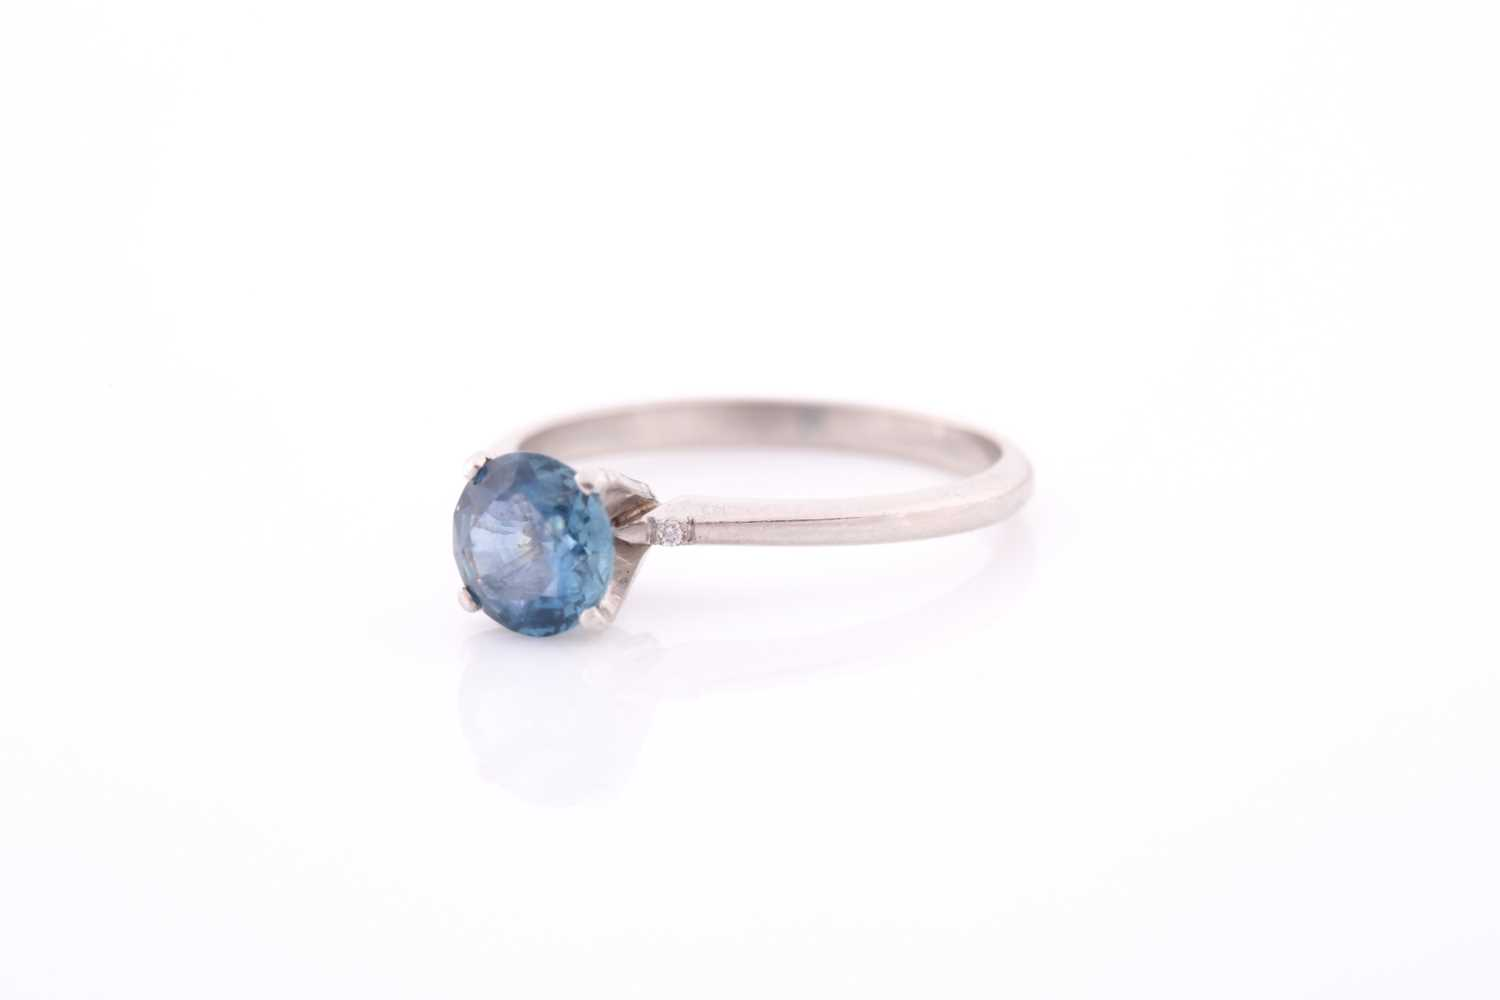 A platinum and solitaire sapphire ring, set with a mixed round-cut blue sapphire of approximately - Image 2 of 4